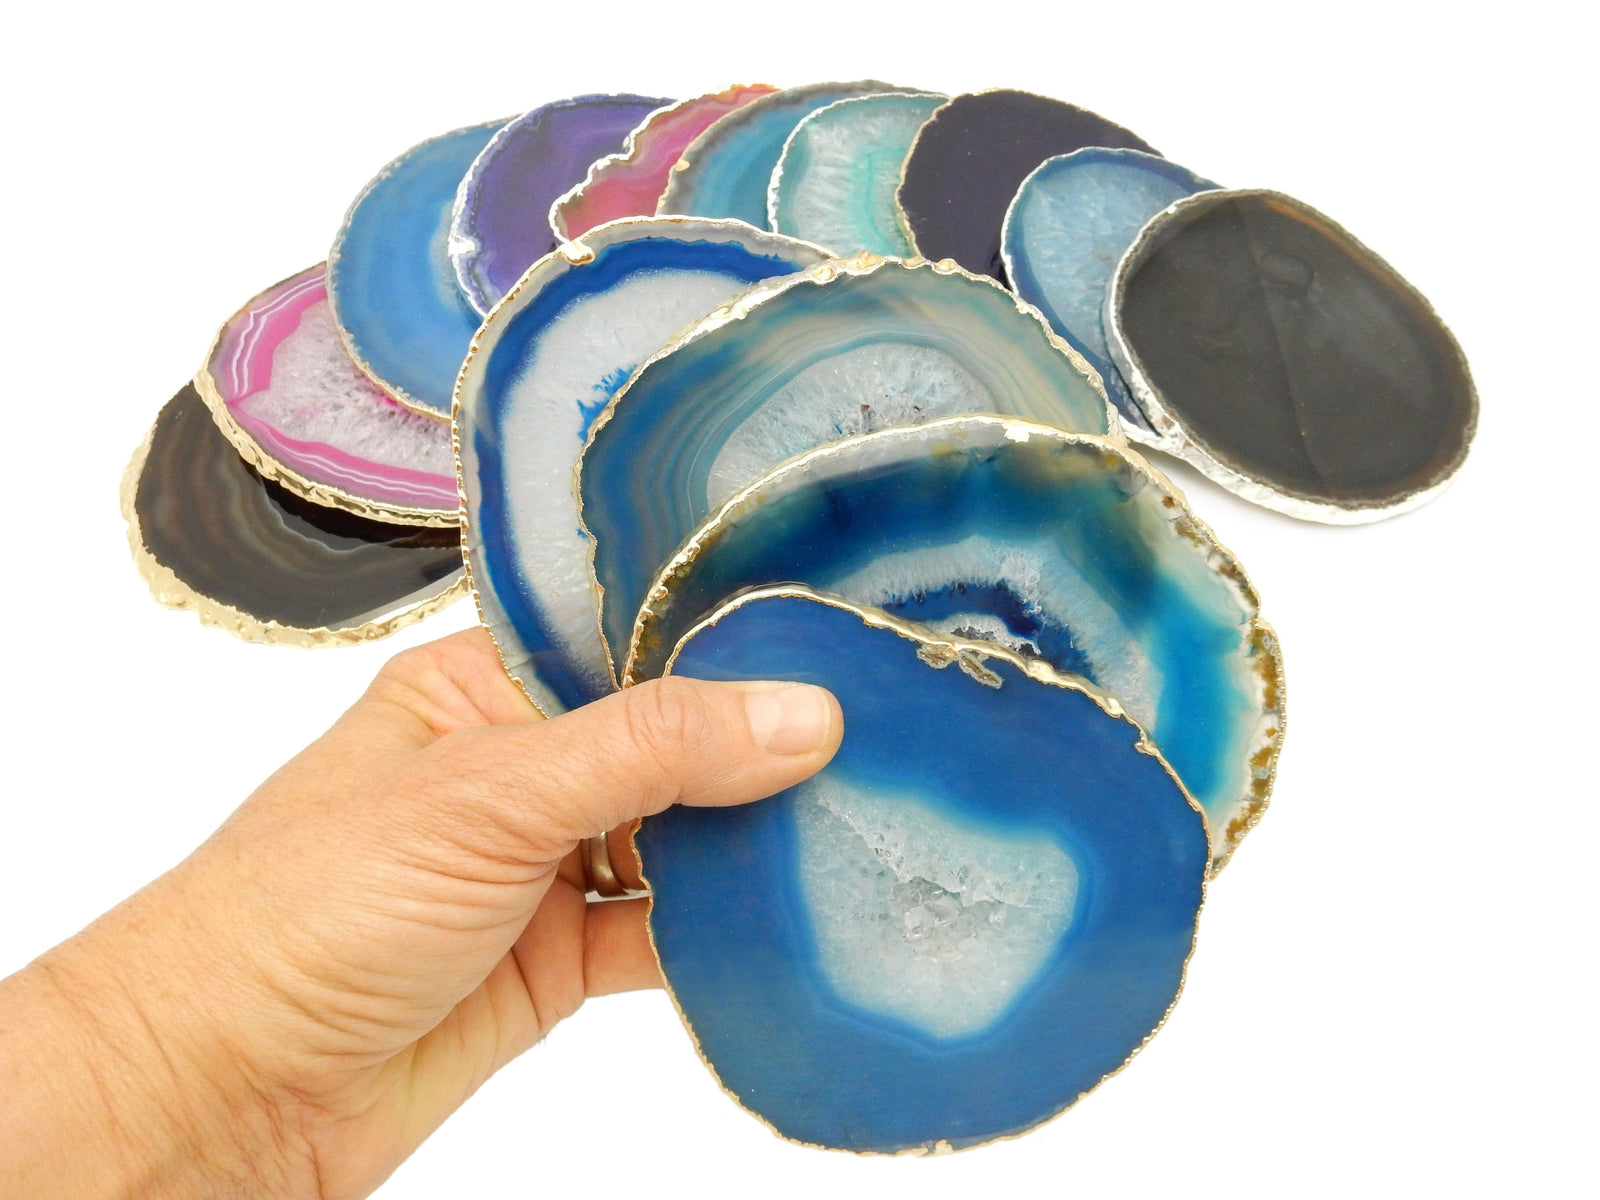 Agate Coasters - Agate Coasters 24k Gold Or Silver Electroplated Edges - Coaster Size (OB4)